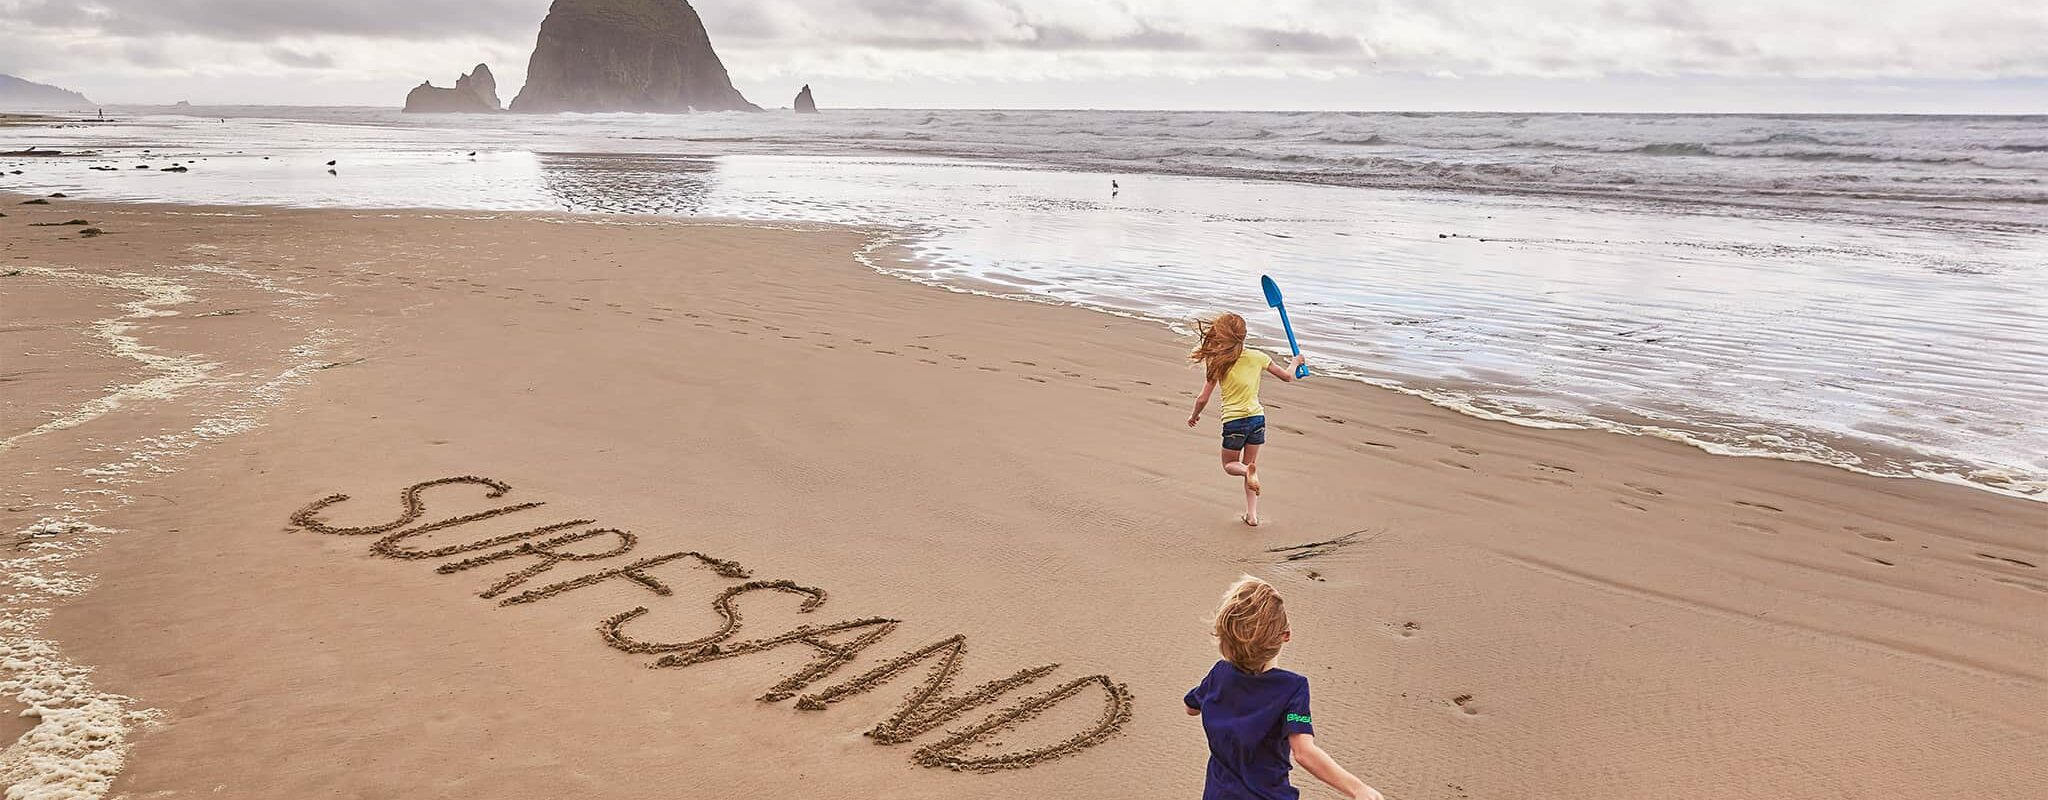 Surfsand Resort in Cannon Beach, Oregon